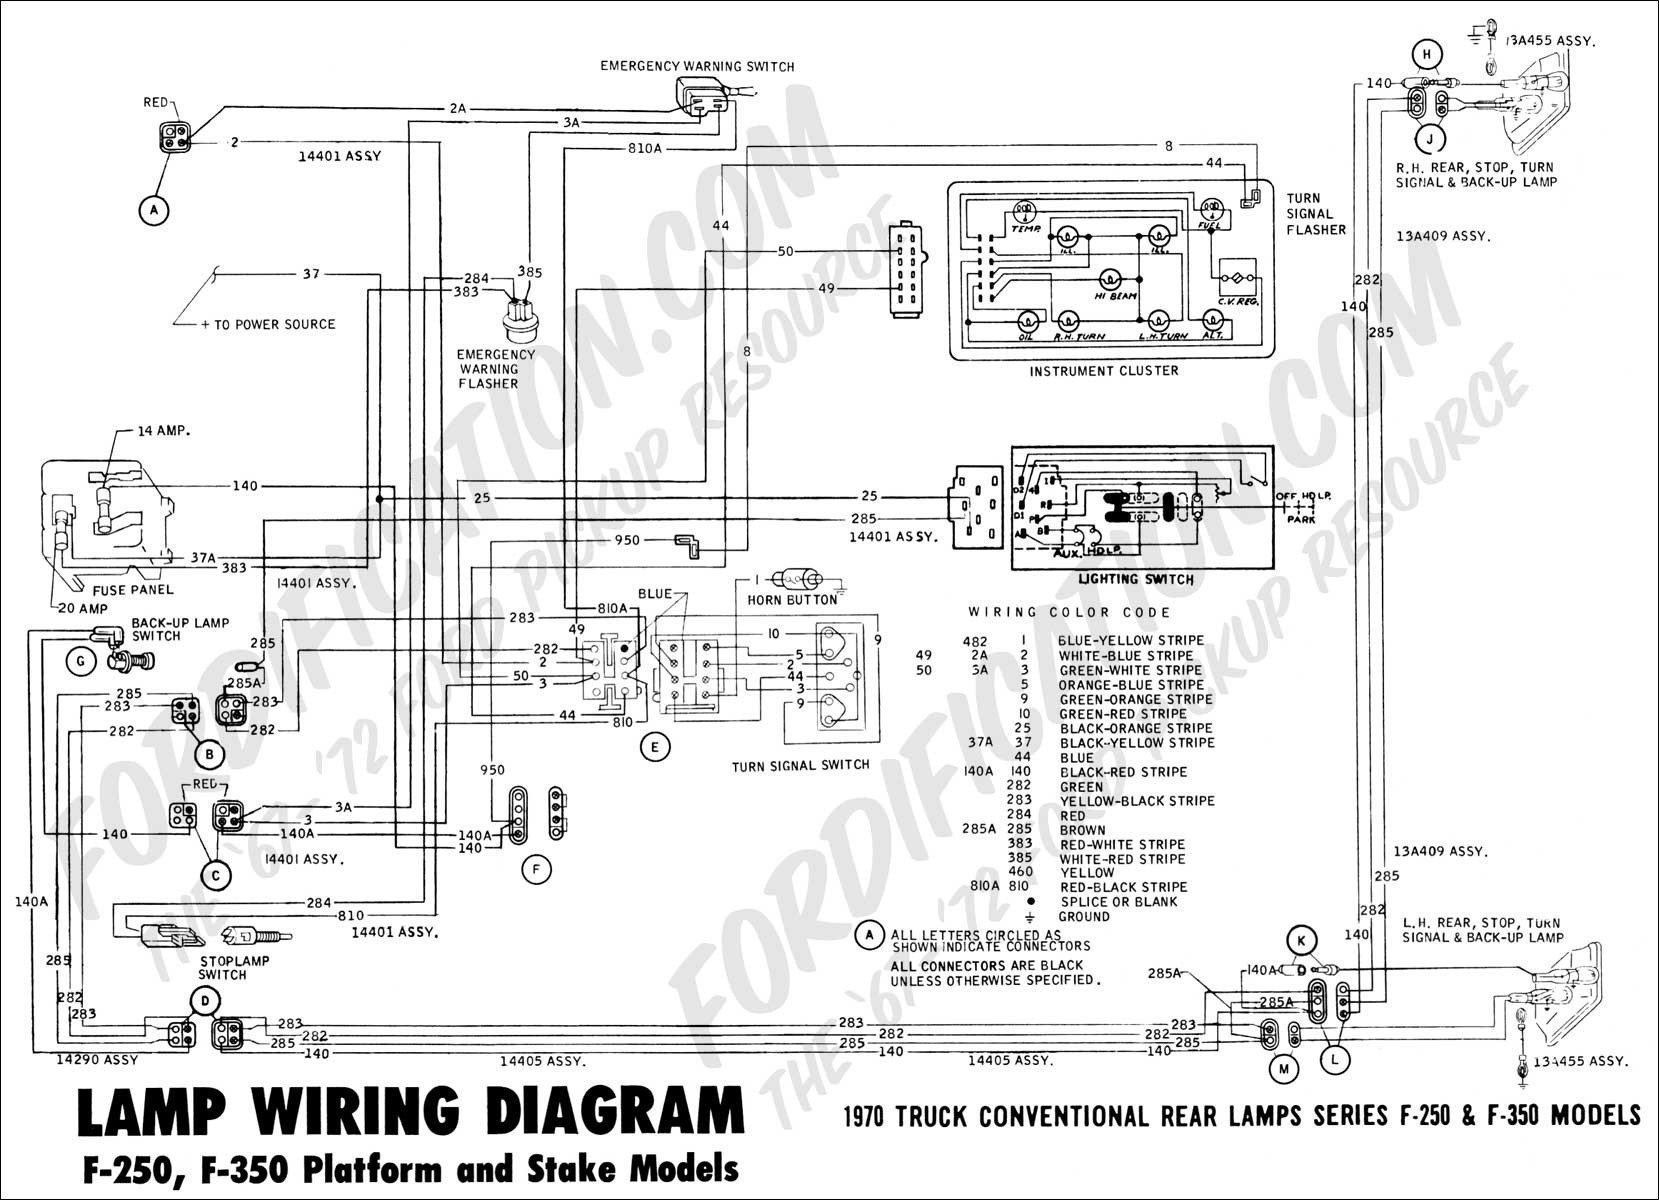 1999 Ford F150 Trailer Wiring Diagram | Trailer Wiring Diagram